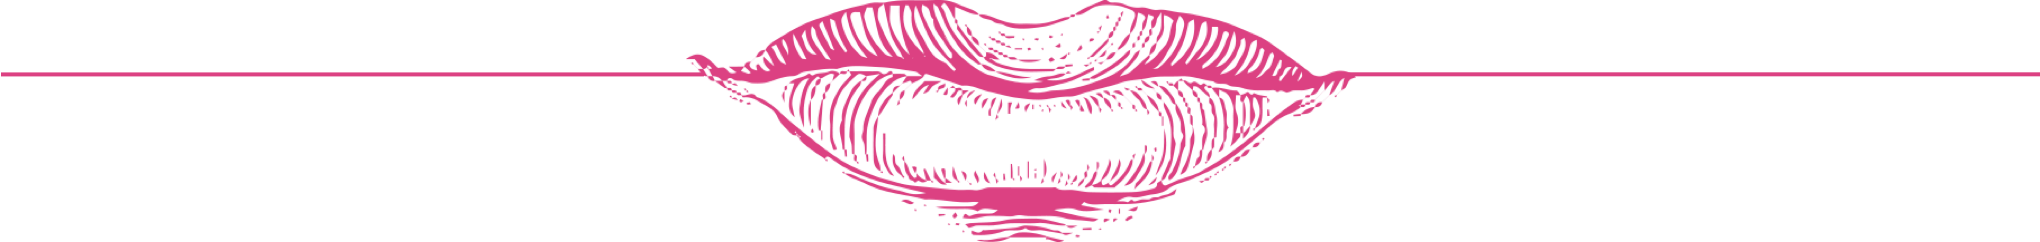 lips_closed_hr.png